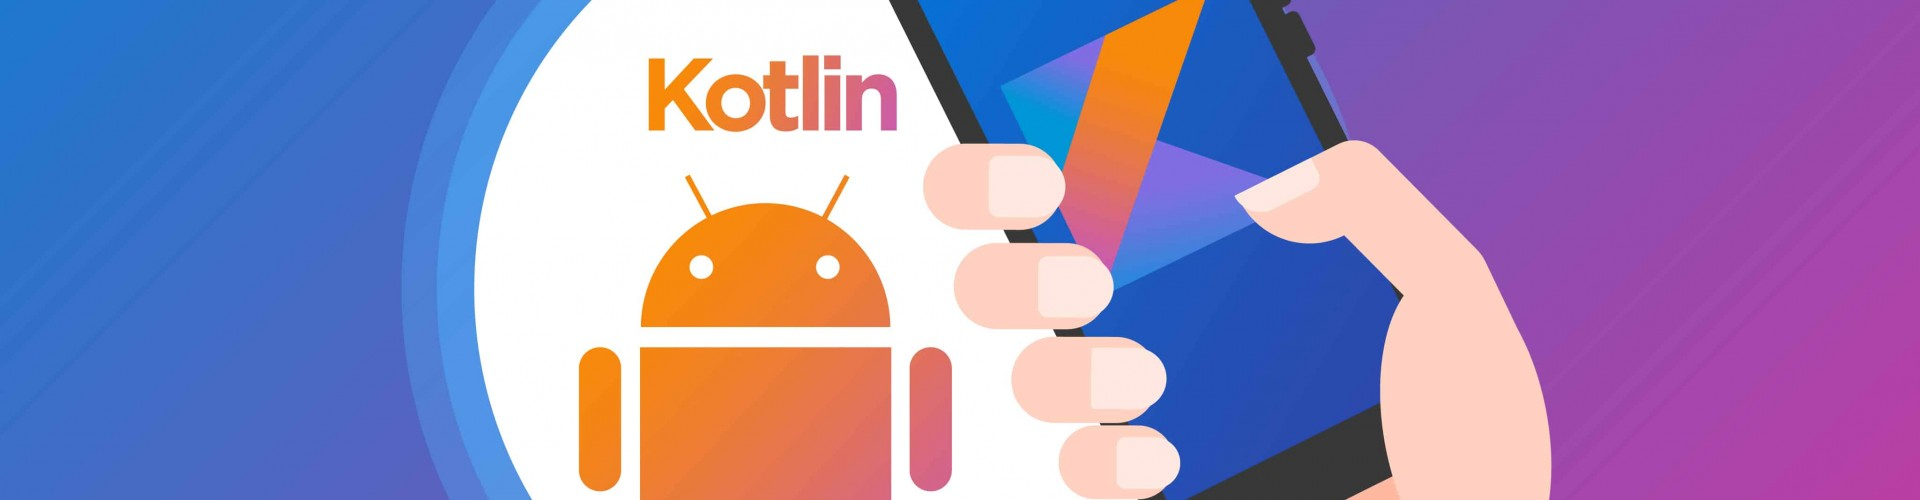 Reasons why Kotlin is the best programming language for Android developers